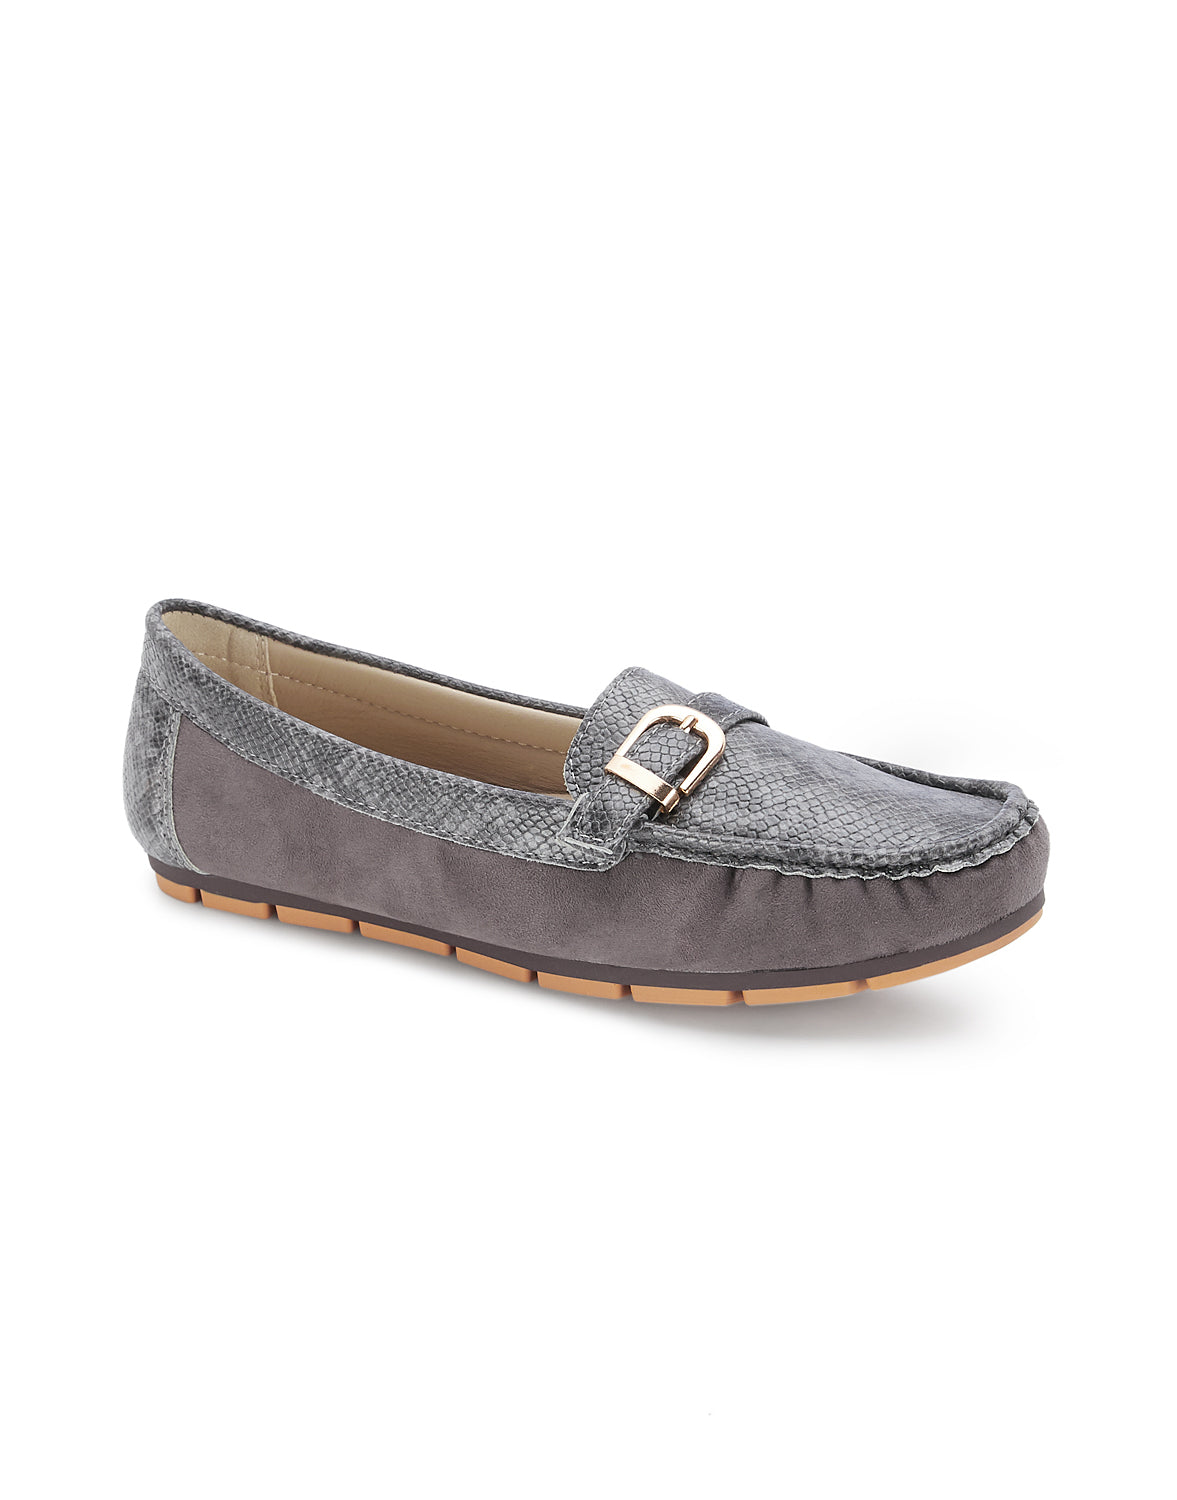 Noreis Grey Round Toe Loafers